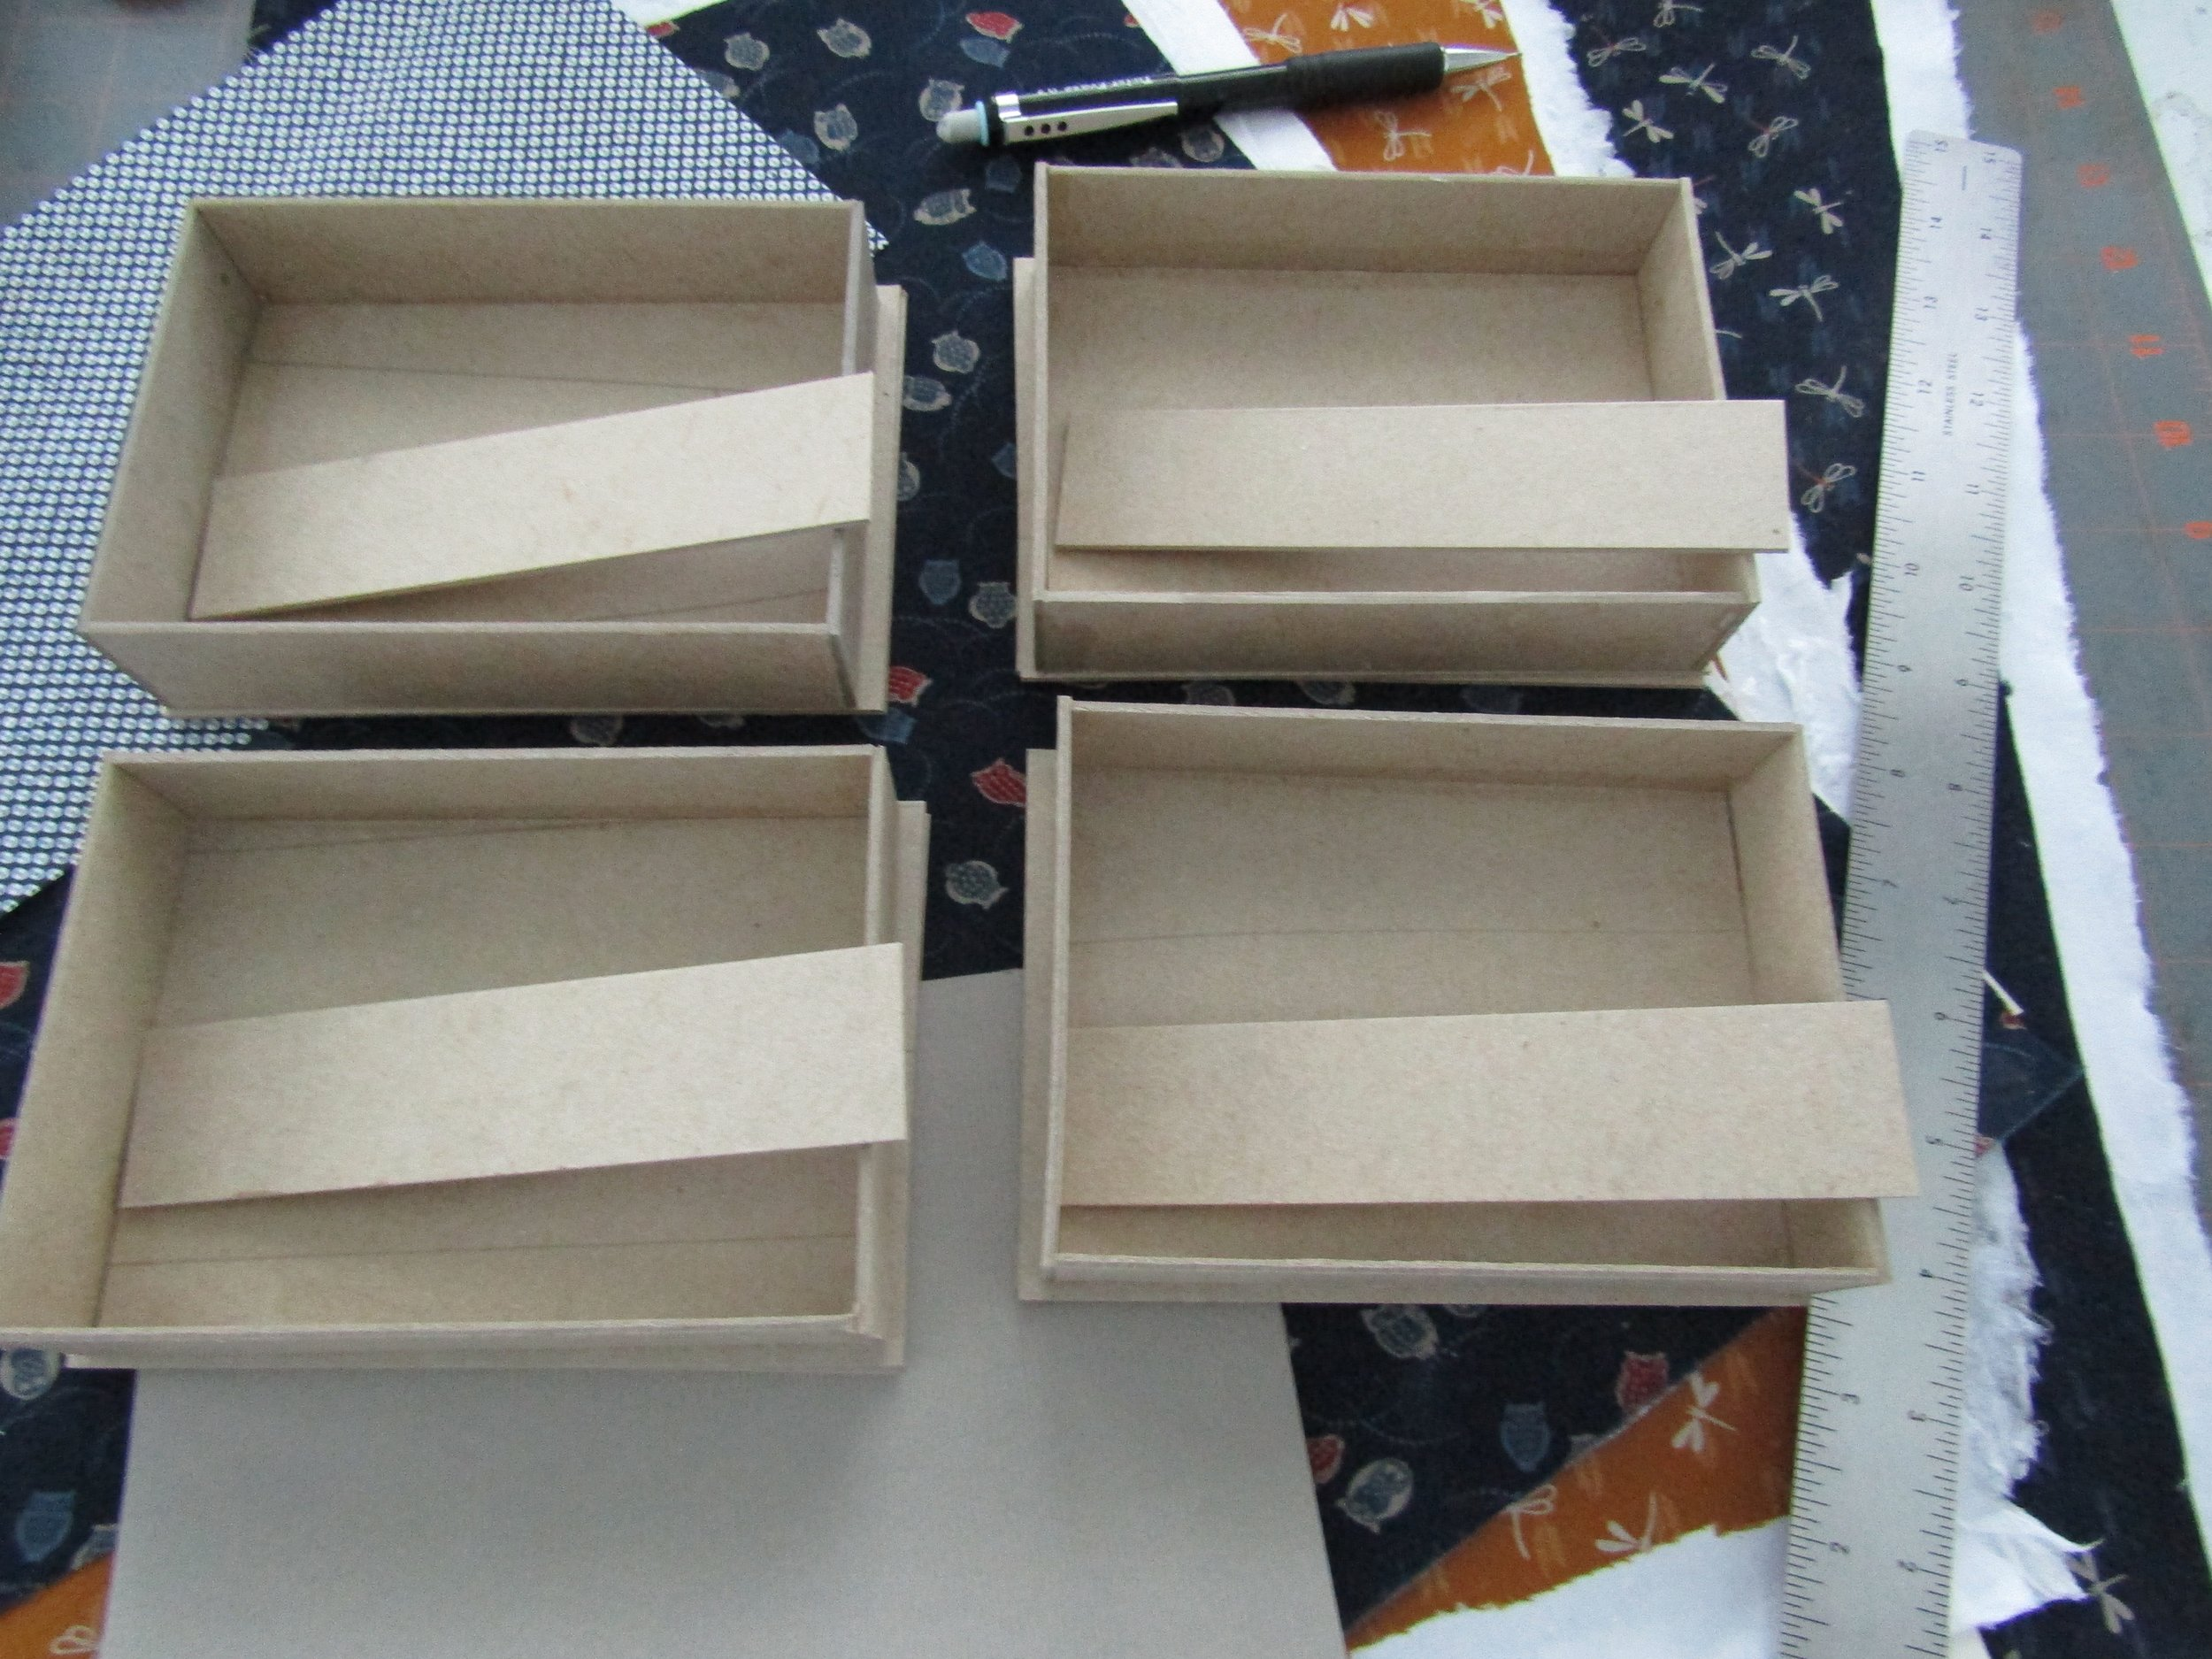 Trays constructed; now for a bit of sanding and then to cover and assemble!